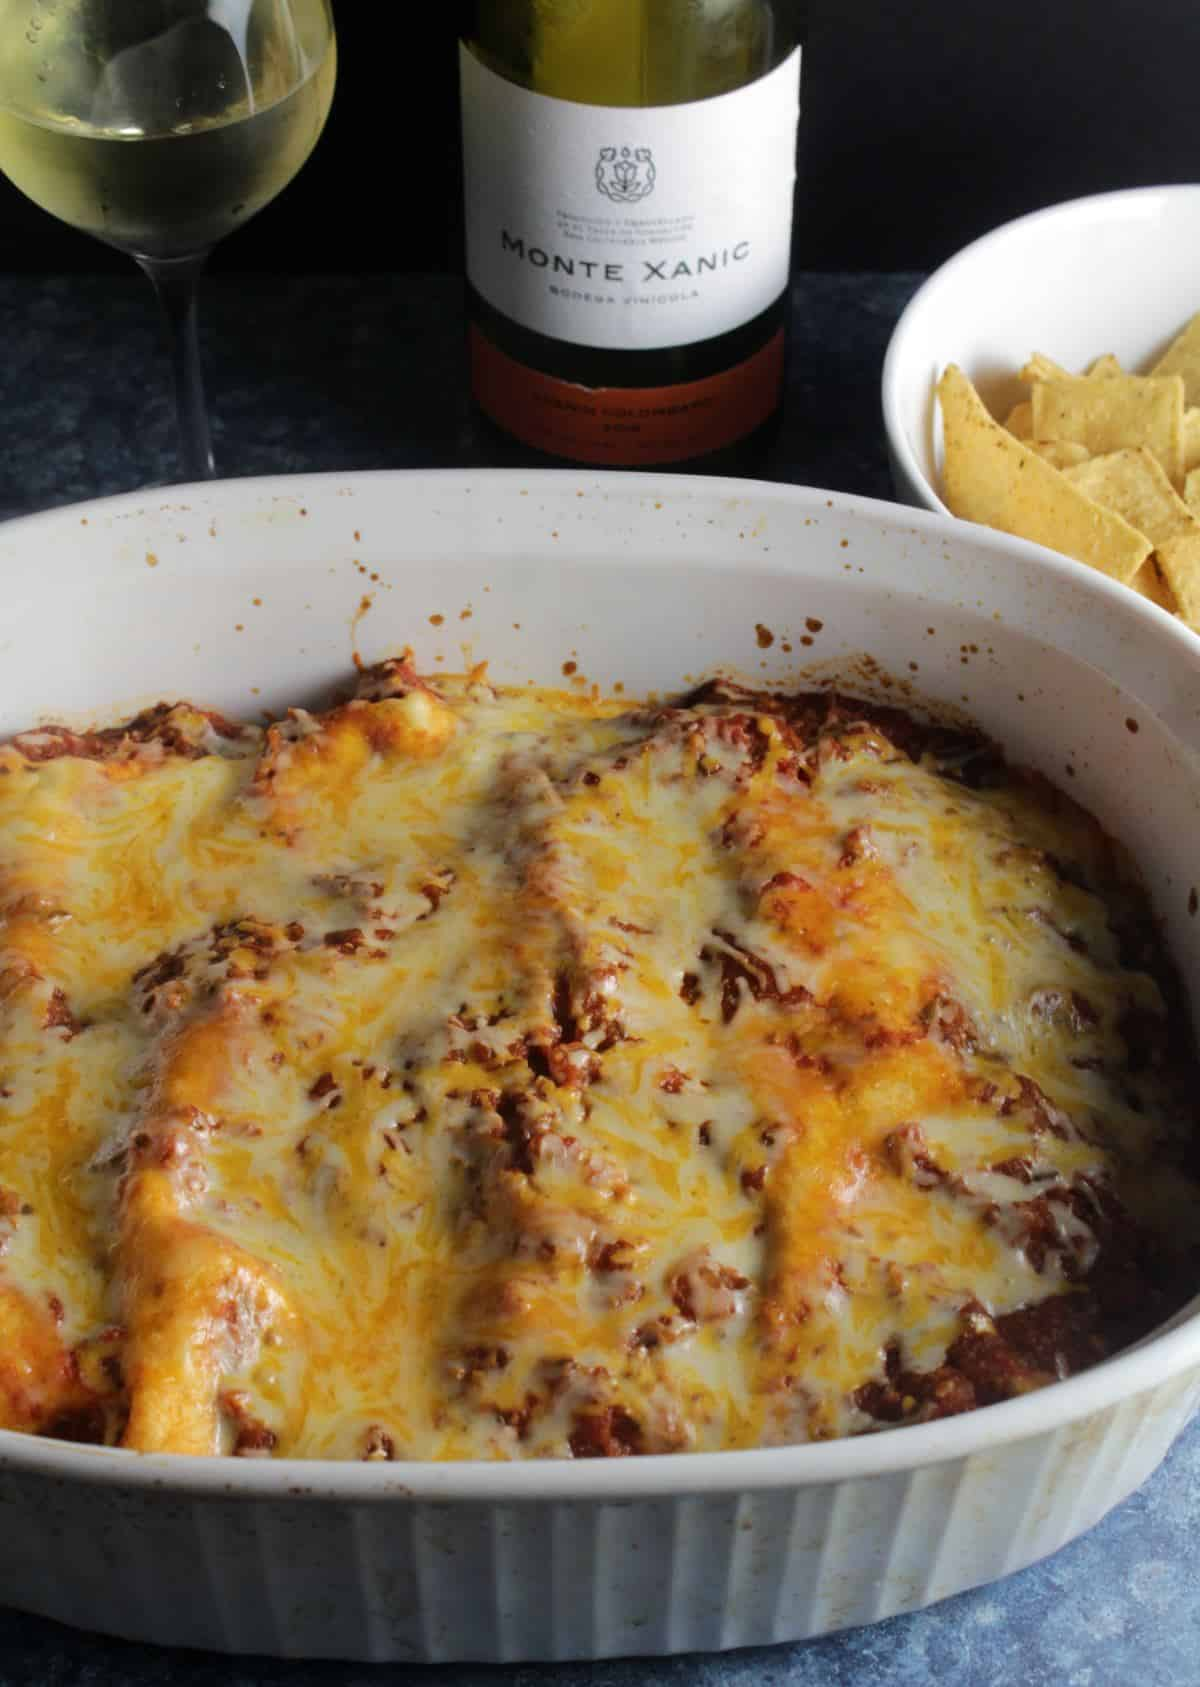 enchiladas in a baking dish served with a white wine.